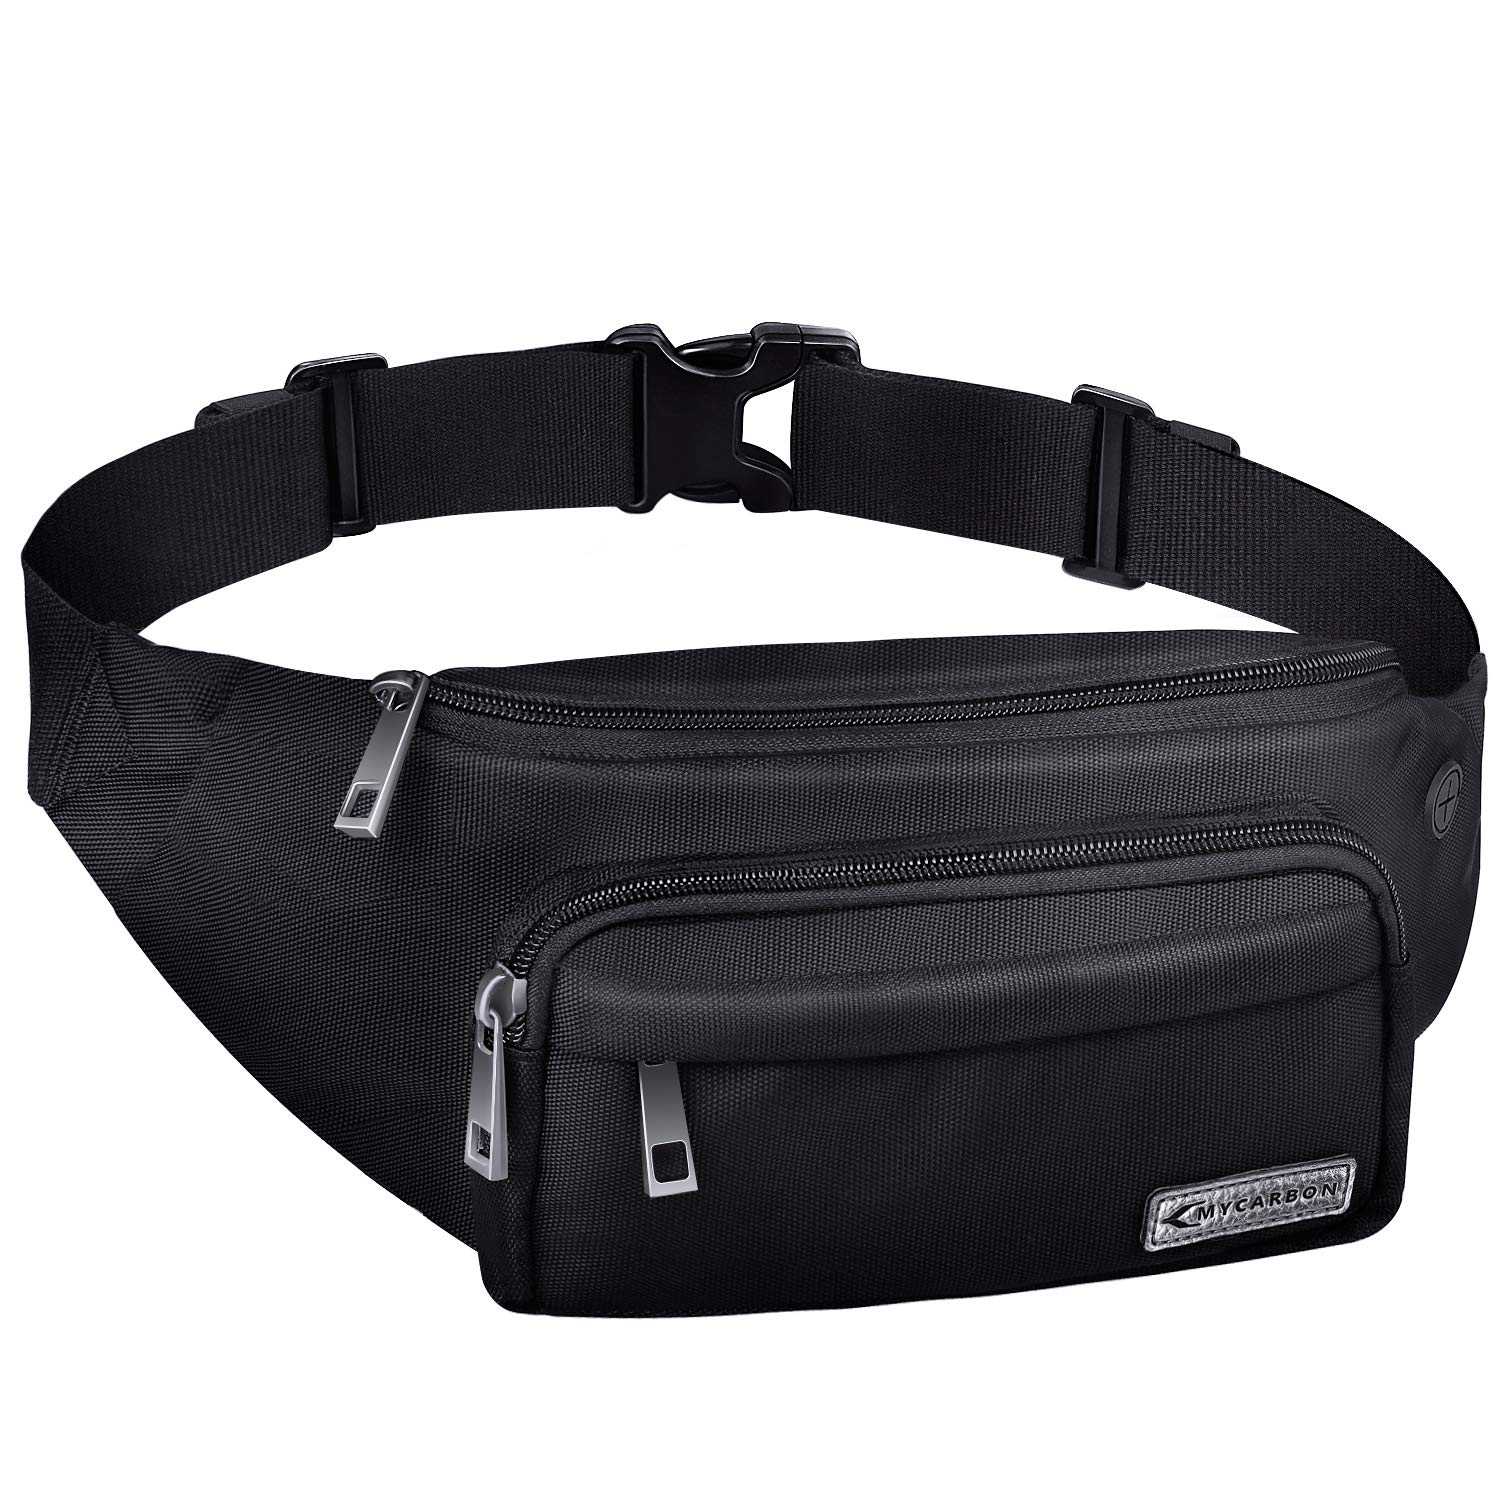 5f3f38a8d4778 MYCARBON Bum Bag Large Capacity,Non-bounce Travel Waist Pack,Non-slip  Cotton Belt Waist Bag for Women Men,Durable Waist Pouch Belt Bag for ...